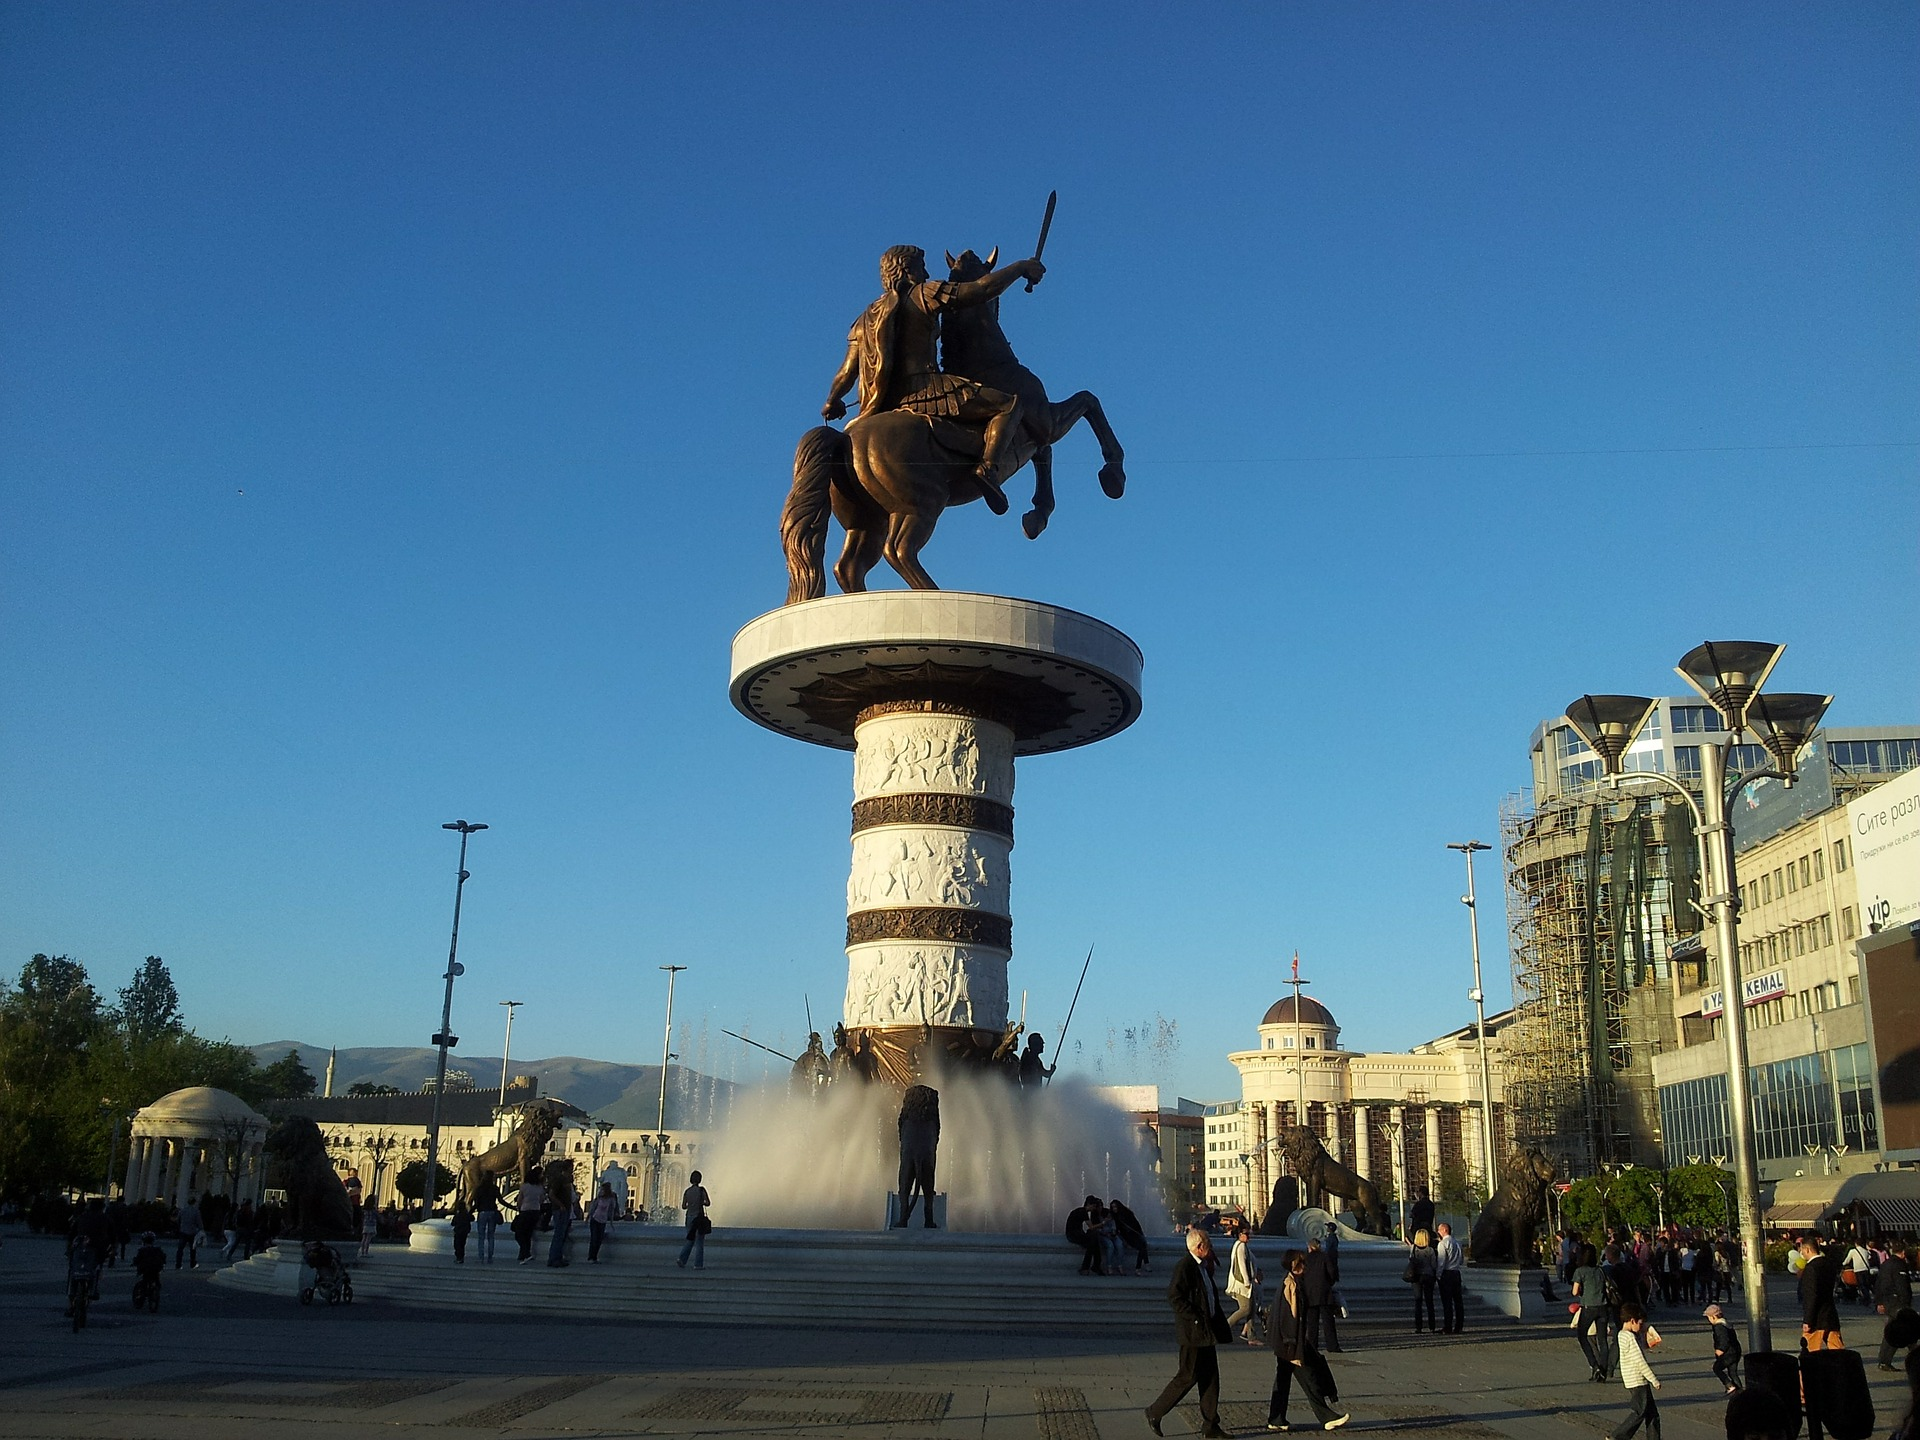 This fountain in the Main Square of Skopje is thought to be Alexander The Great